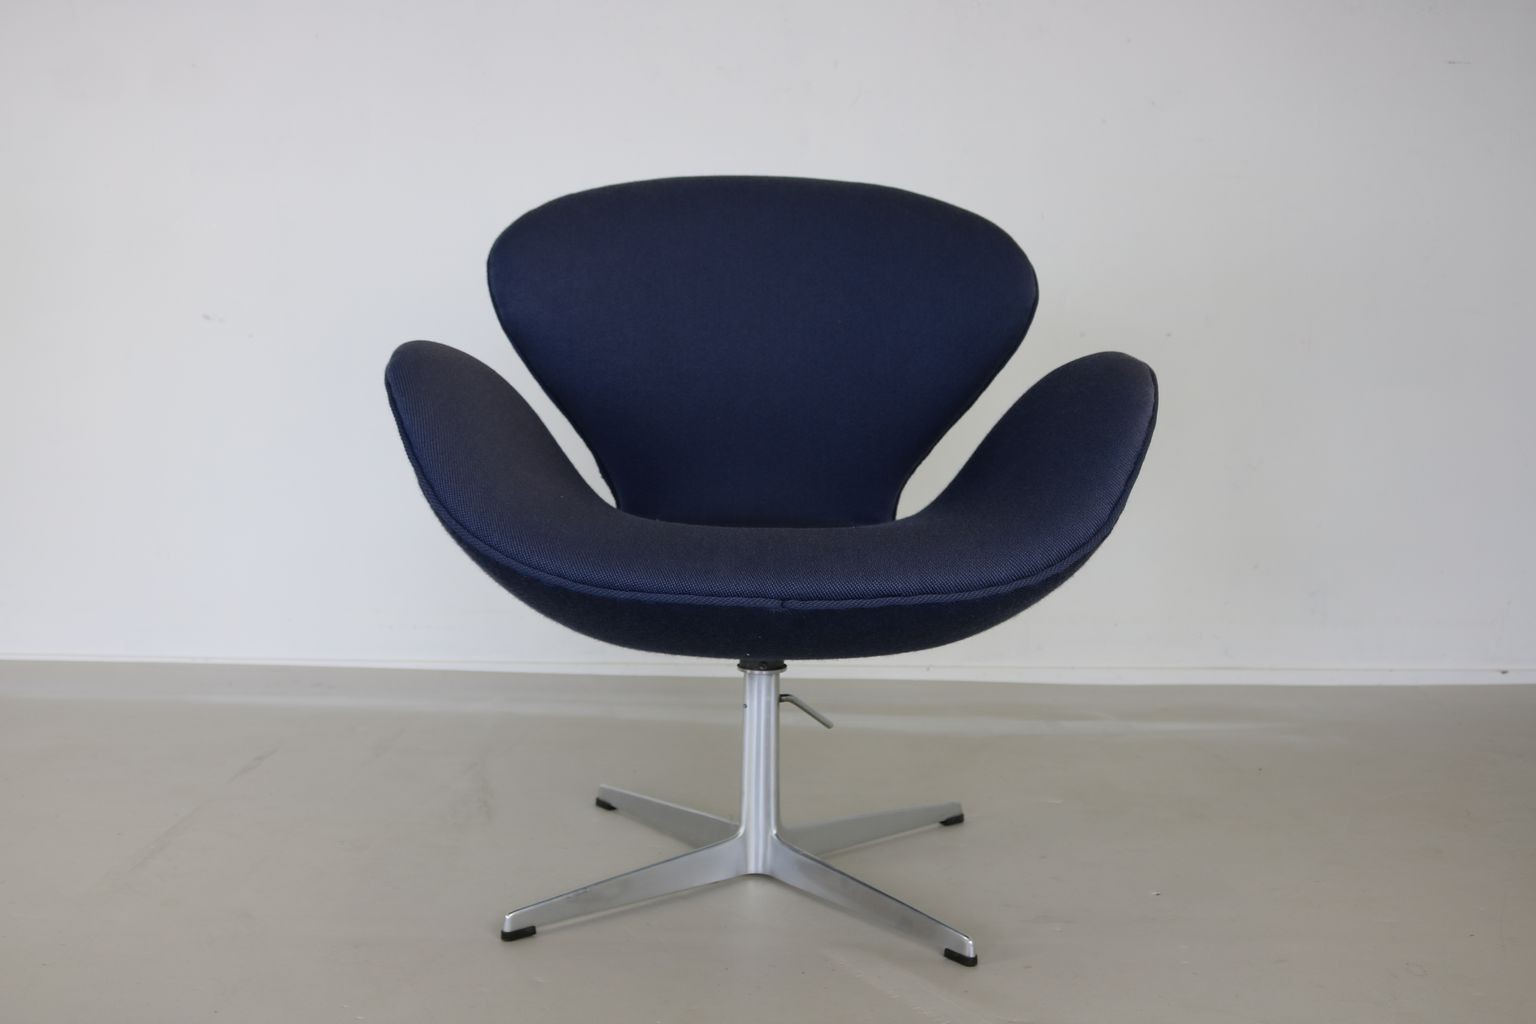 Das Ei Sessel Arne Jacobsen Jacobsen Sessel Simple Art With Jacobsen Sessel Top Das